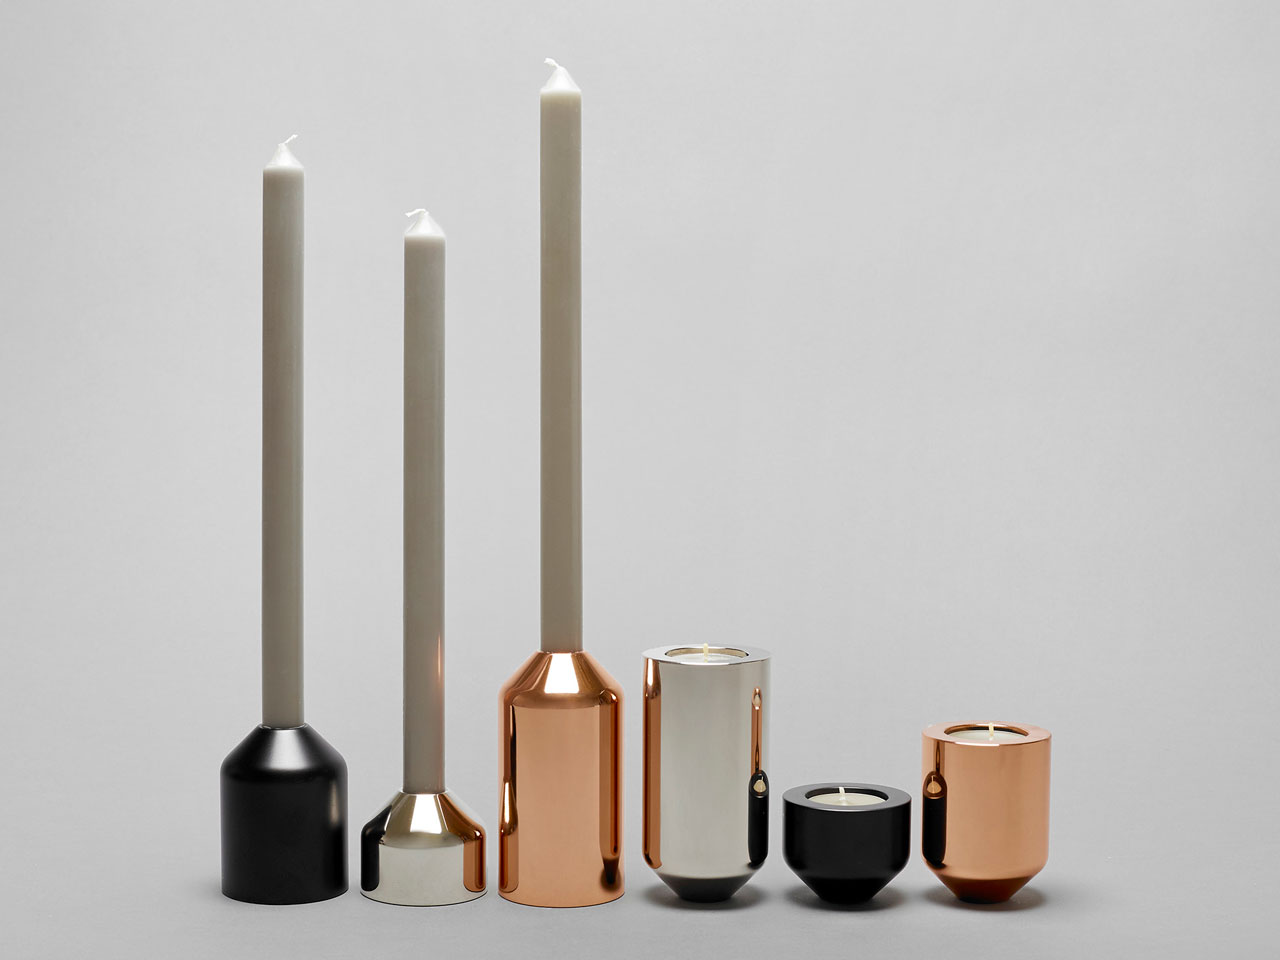 Minimalist, Interchangeable Candleholders by Joe Doucet